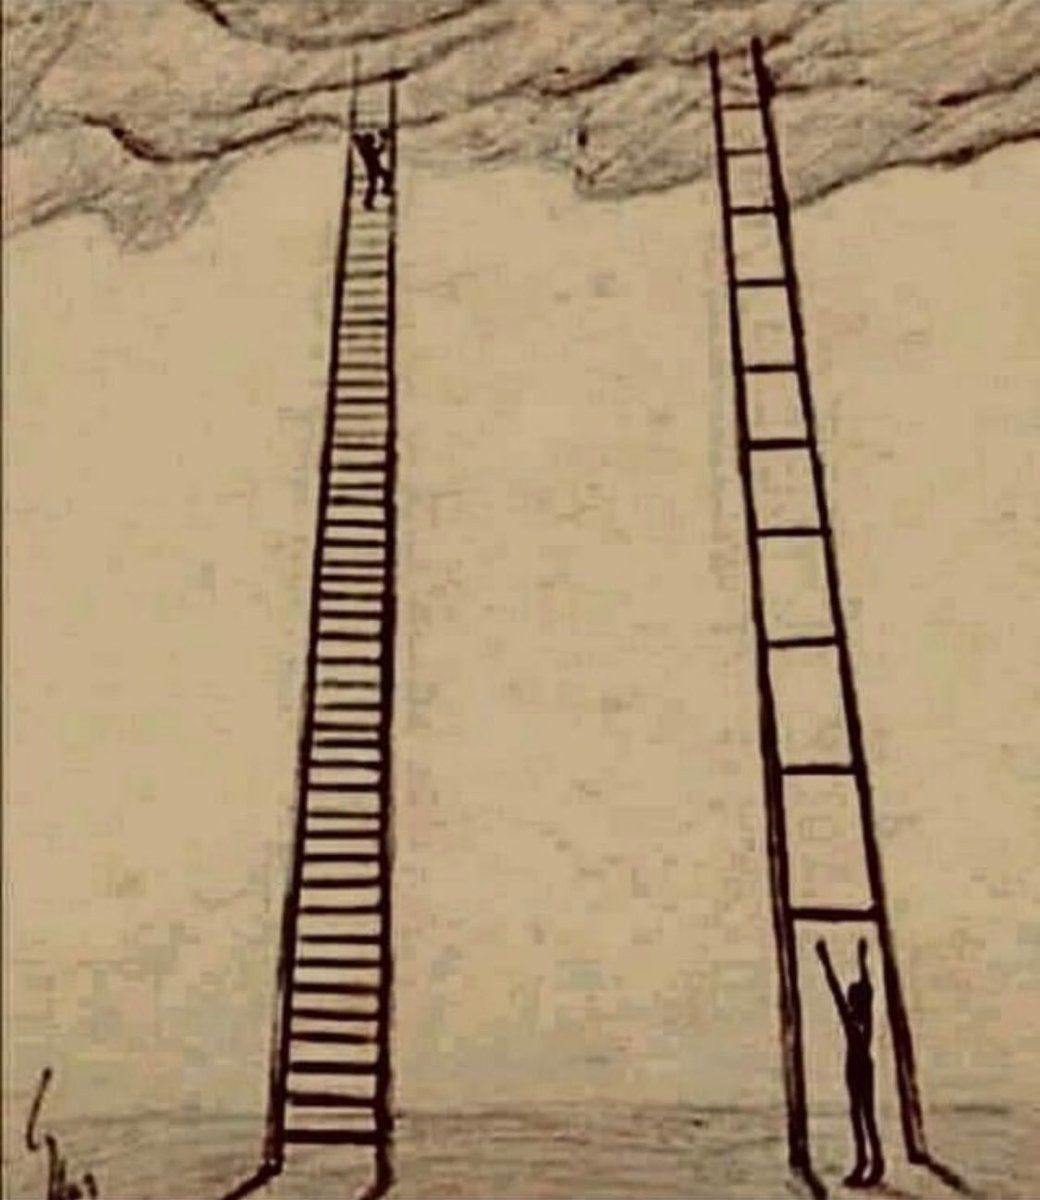 Comic depicting two ladders. Rungs close together lead person to the top. Rungs spaced apart leaves person on ground.